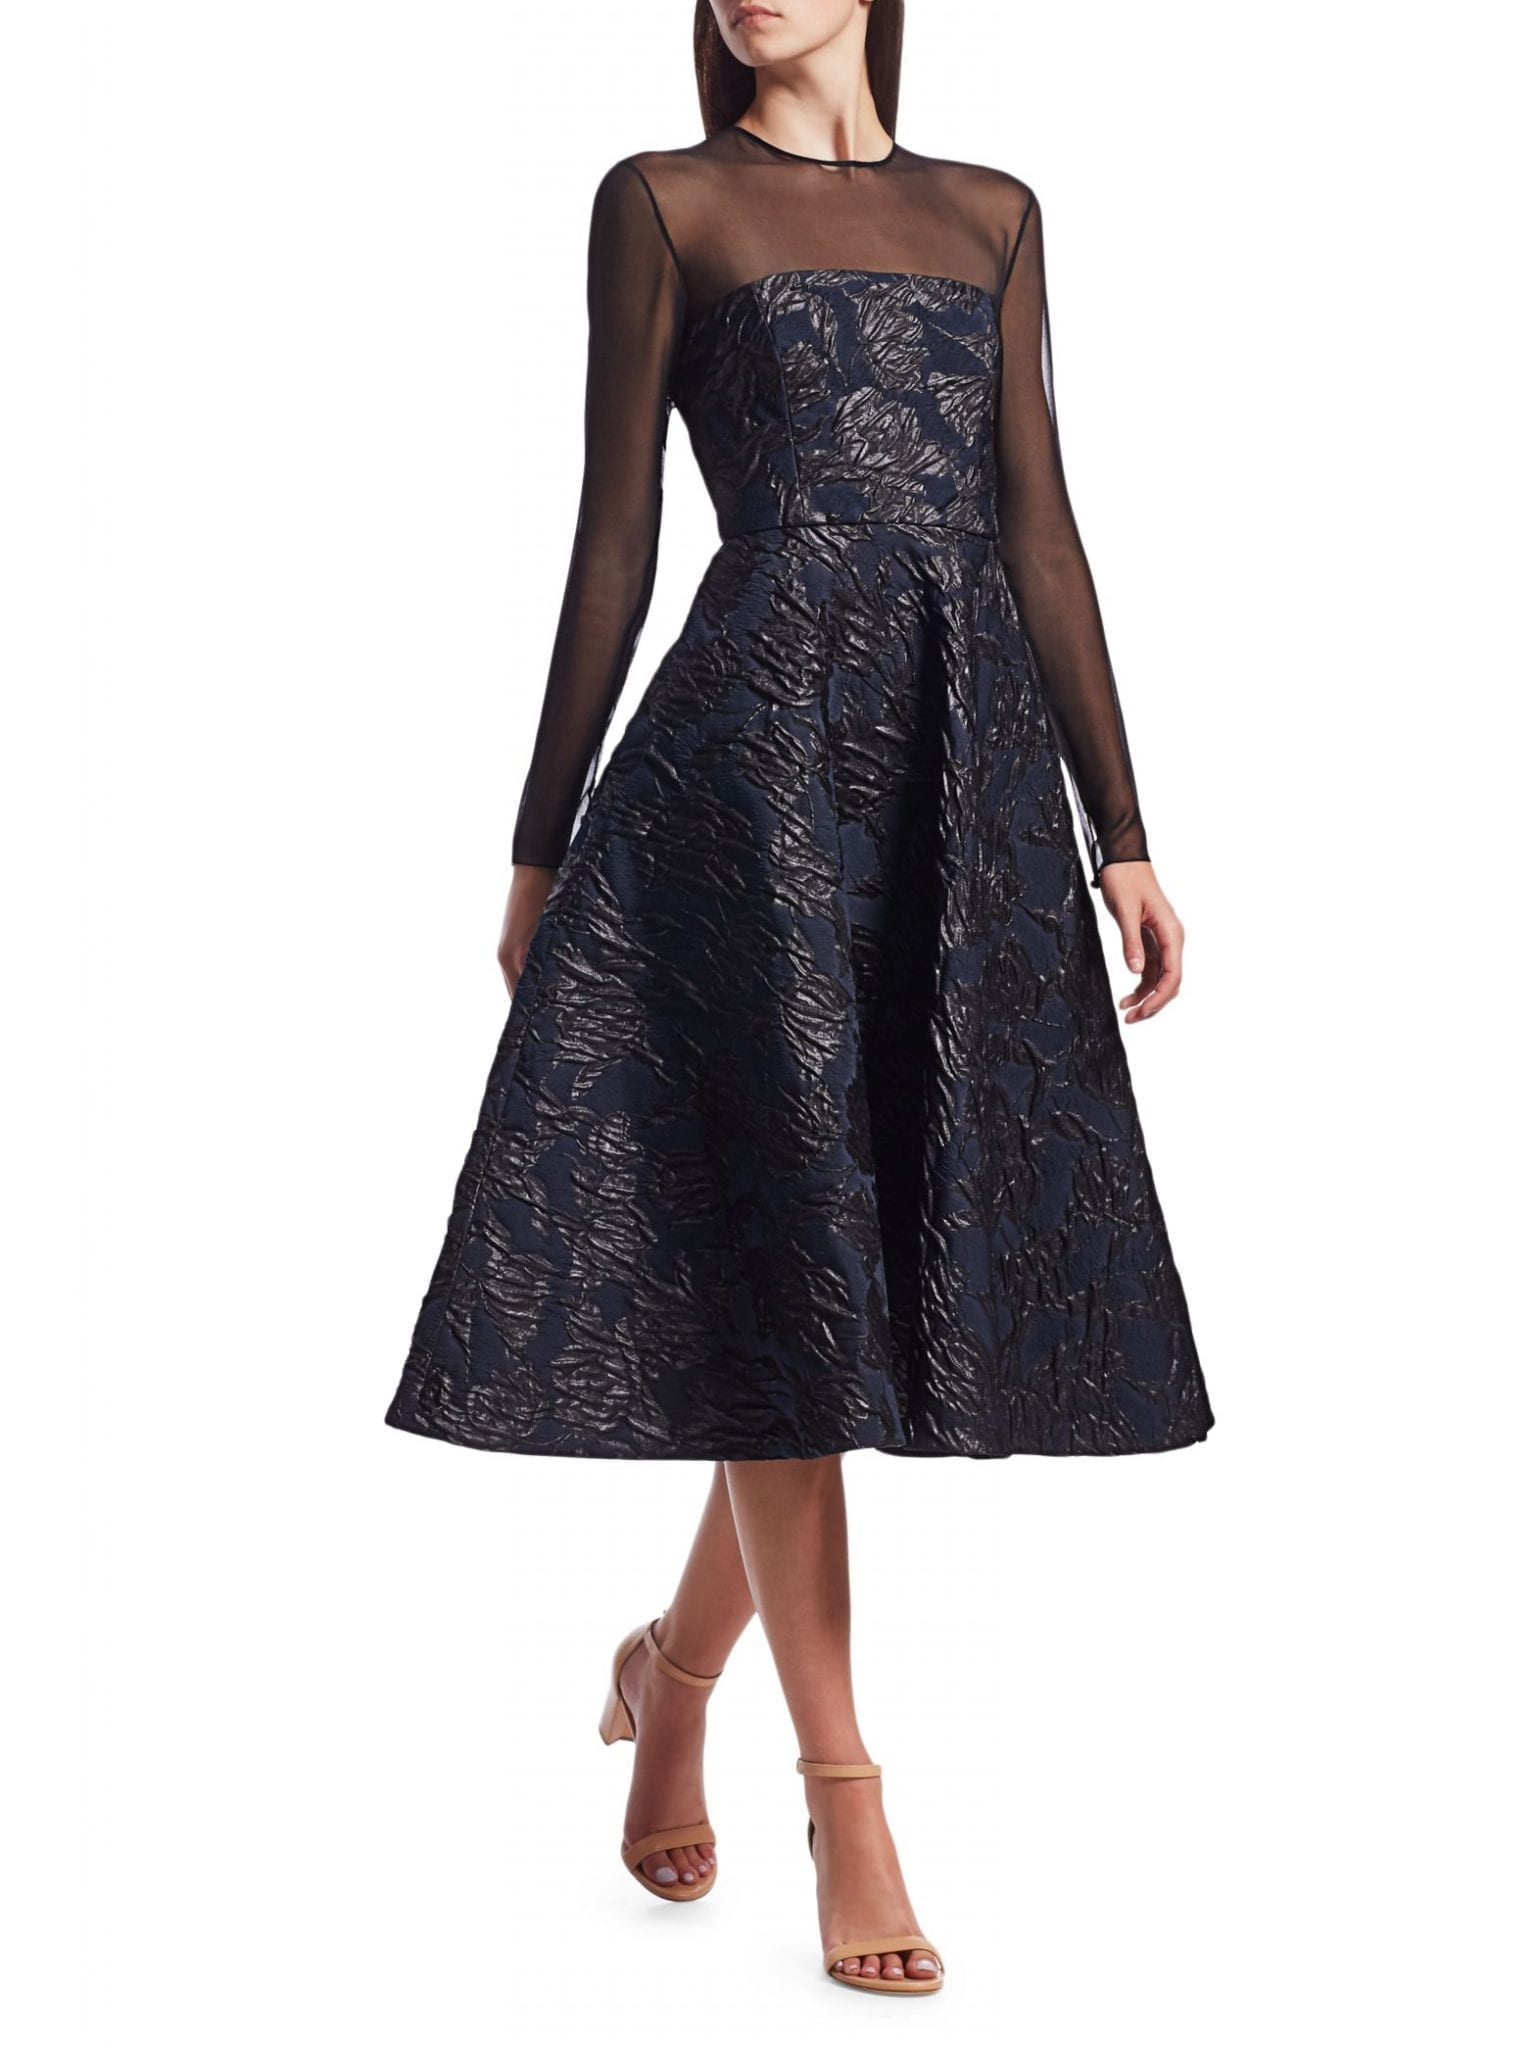 JASON WU COLLECTION Embossed Tulle Cocktail Dress